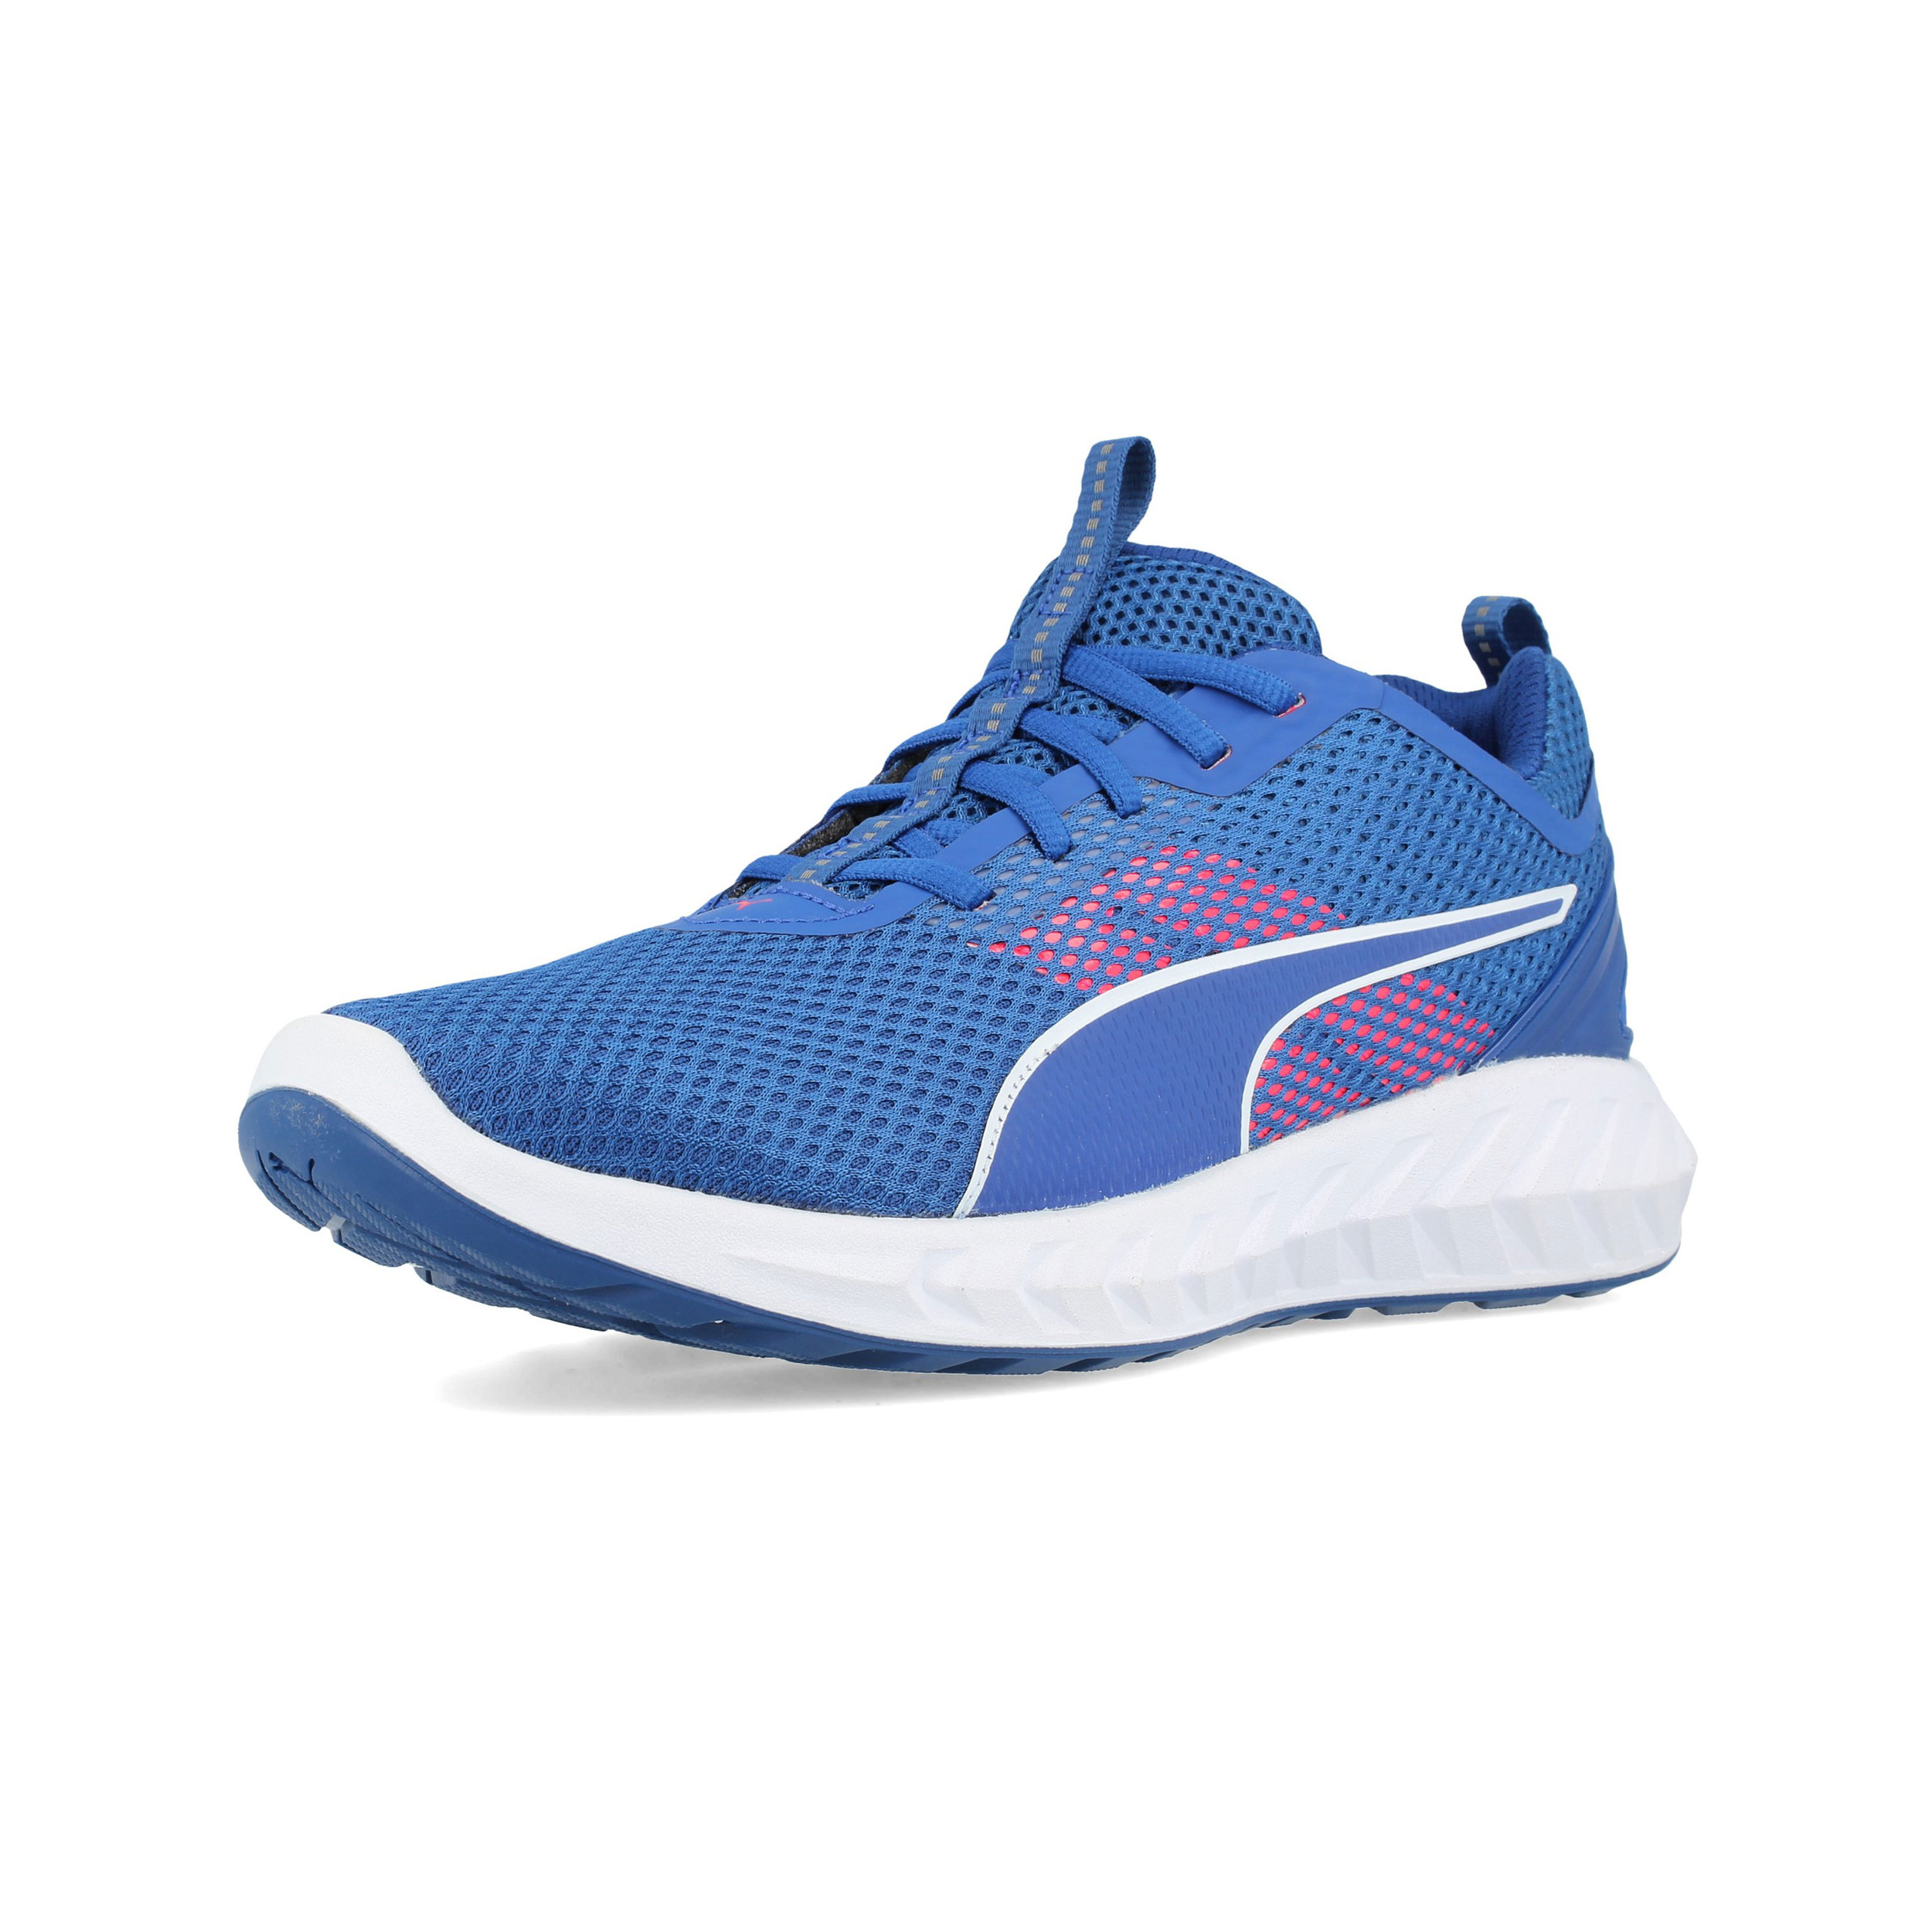 Puma Mens IGNITE Ultimate 2 Running Shoes Trainers Sneakers Blue Sports 4fffe5ee7